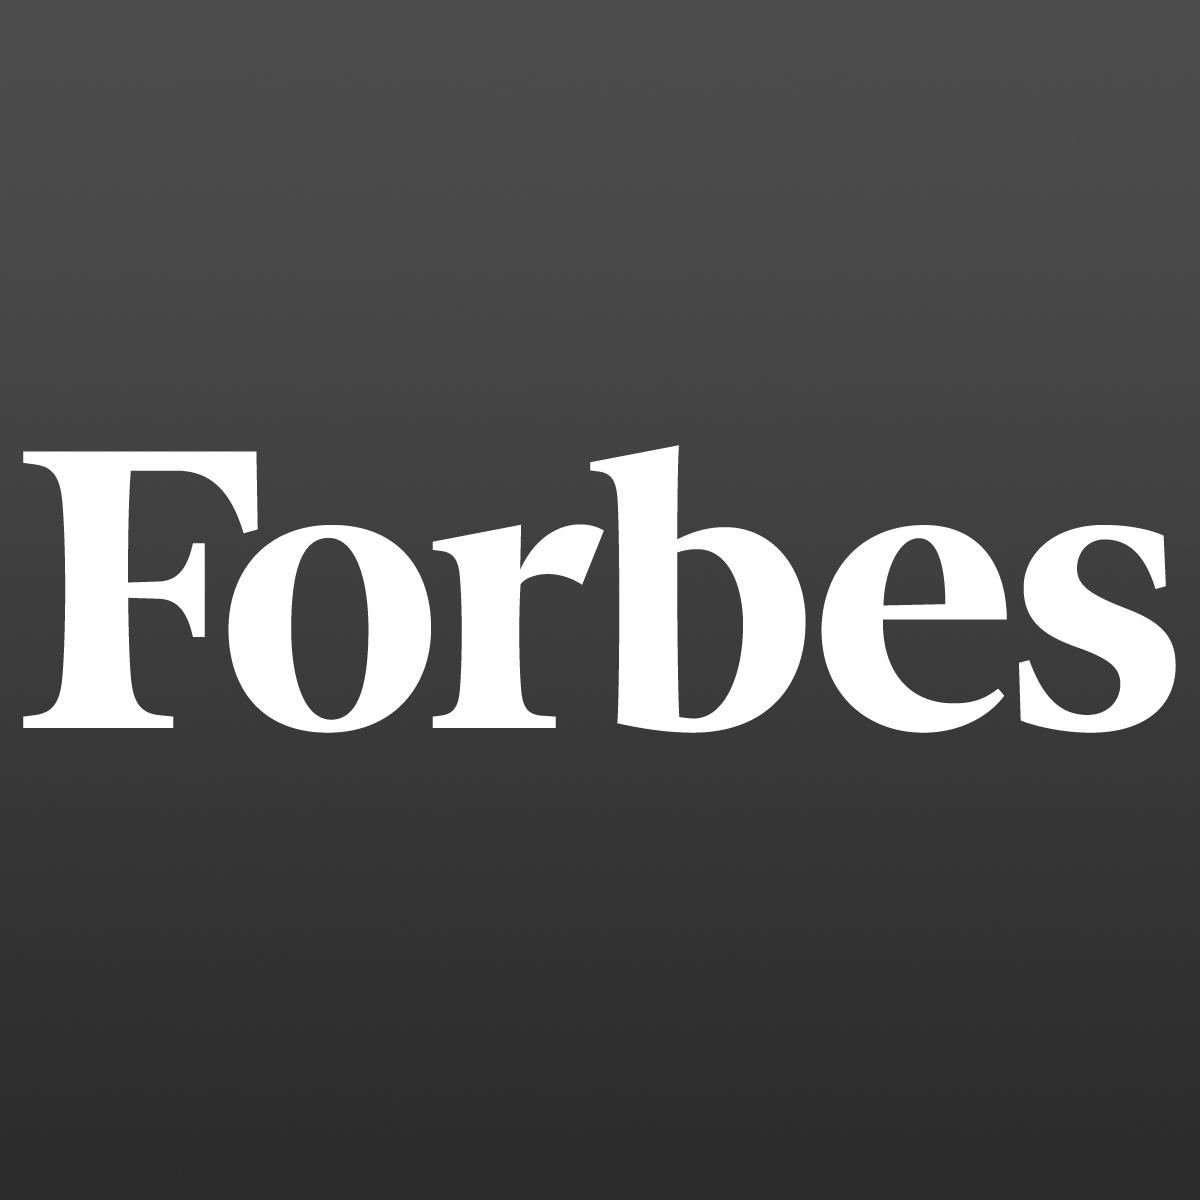 Forbes.